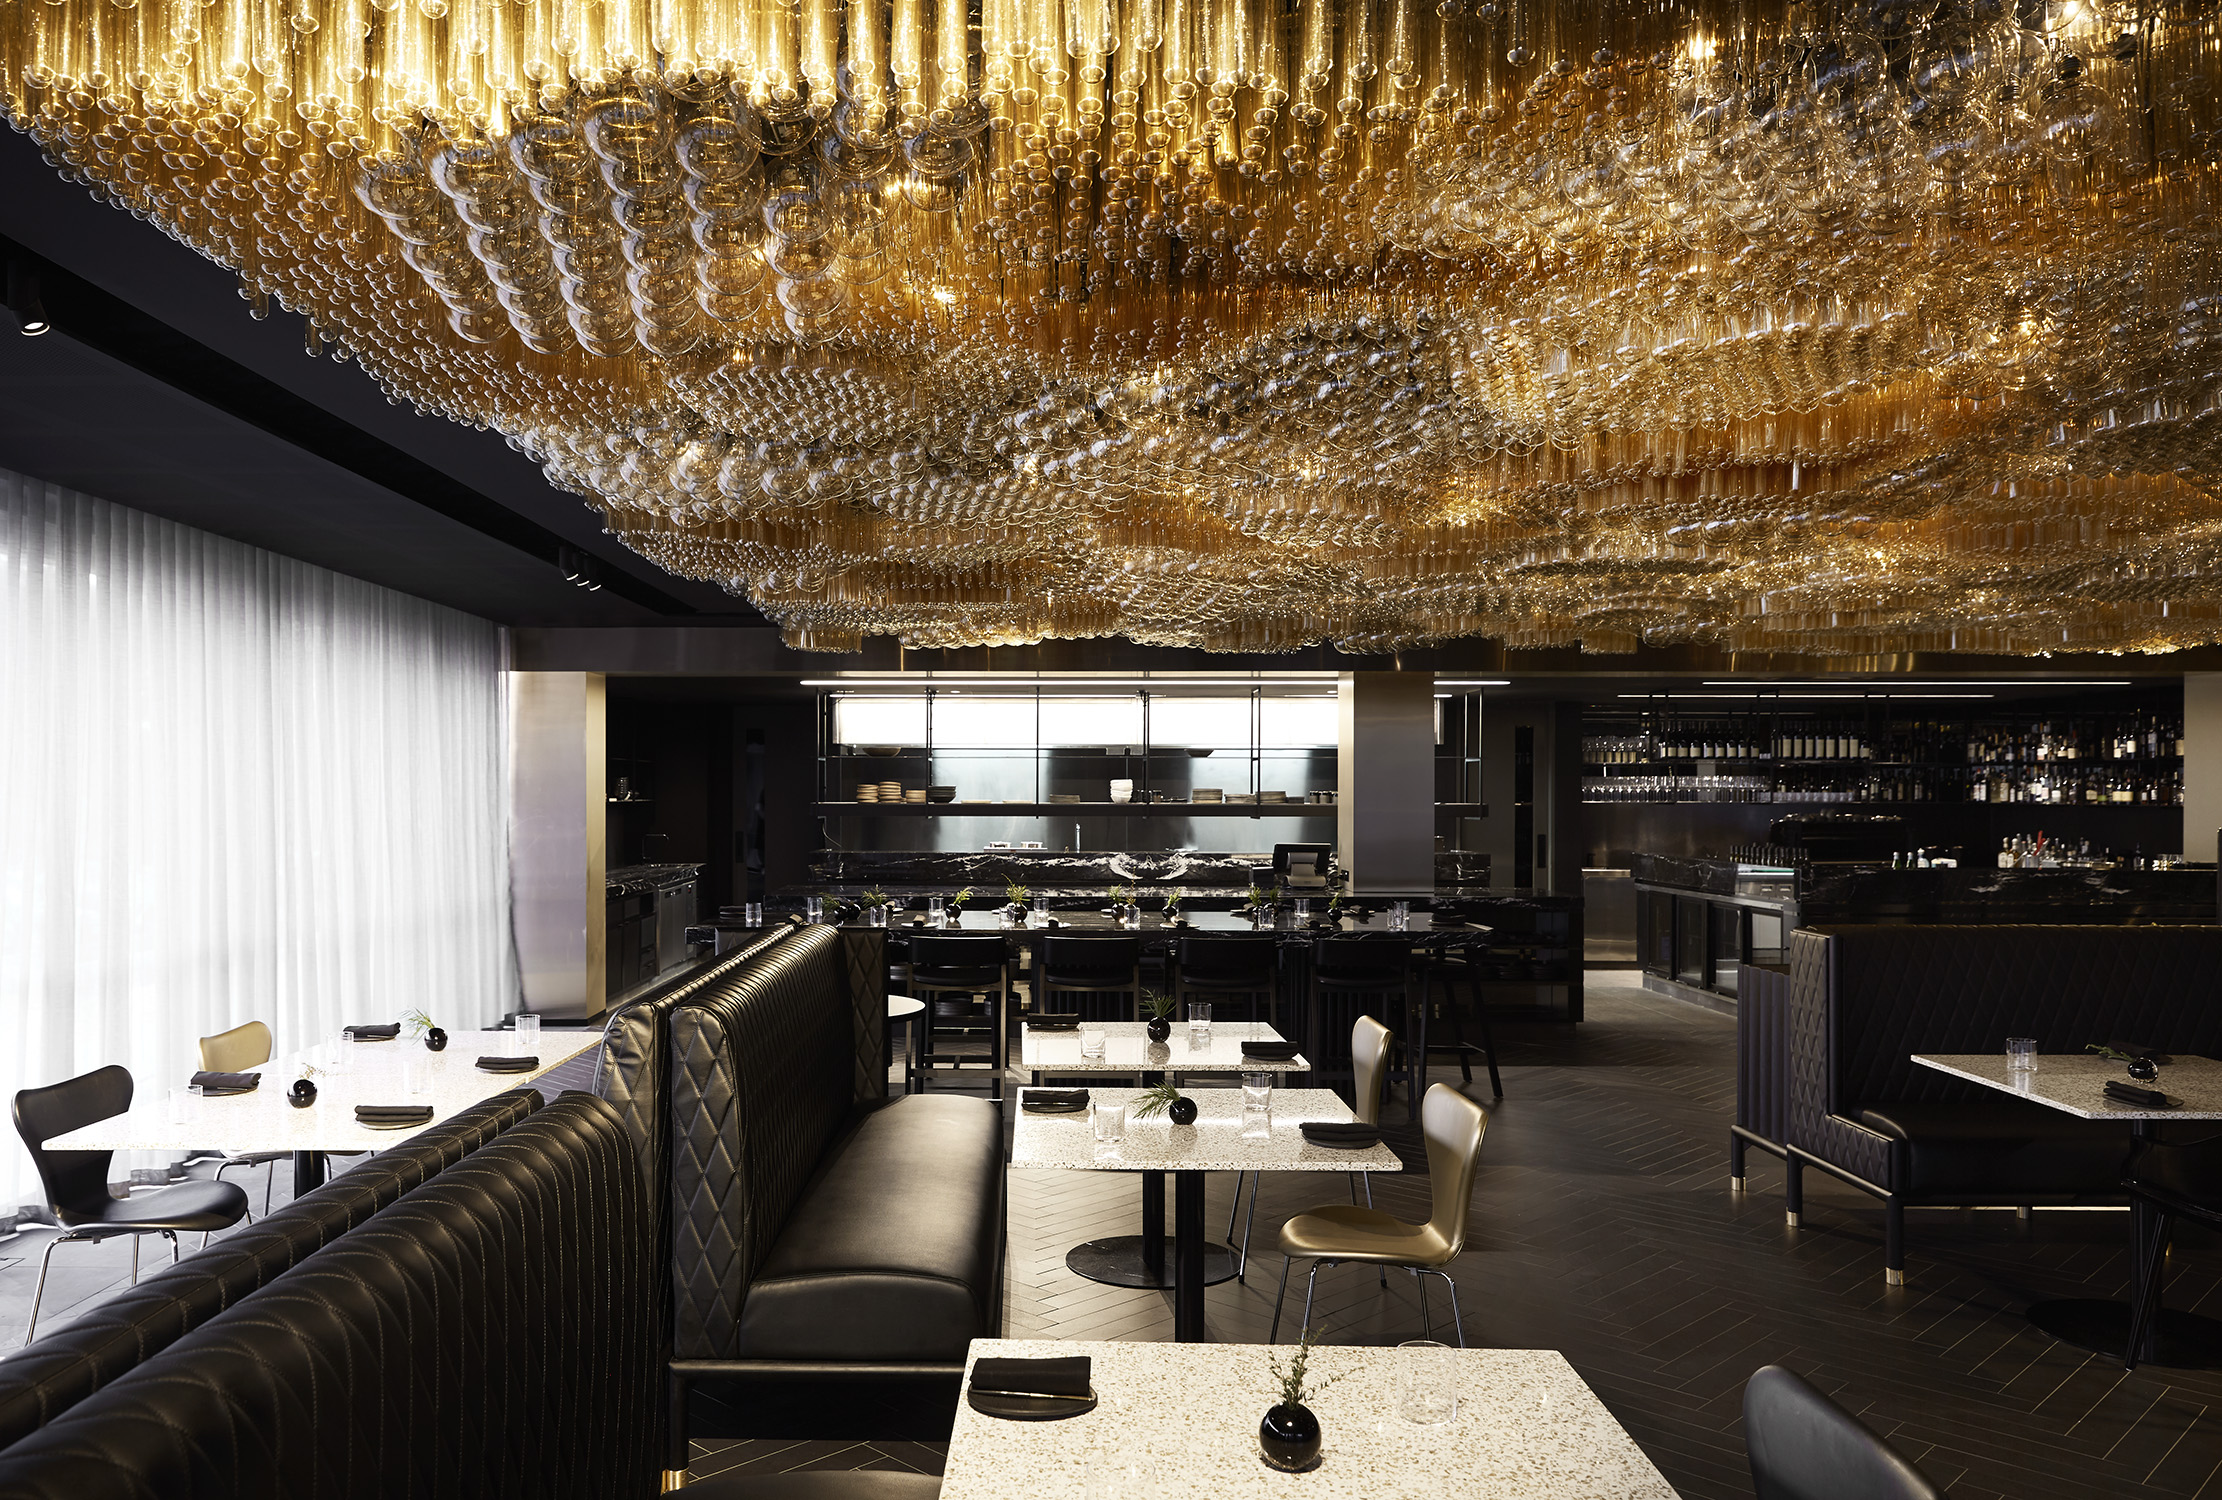 Jackalope Hotel dining experience will blow your taste buds. Doot Doot Doot restaurant designed by the Carr Design Group.